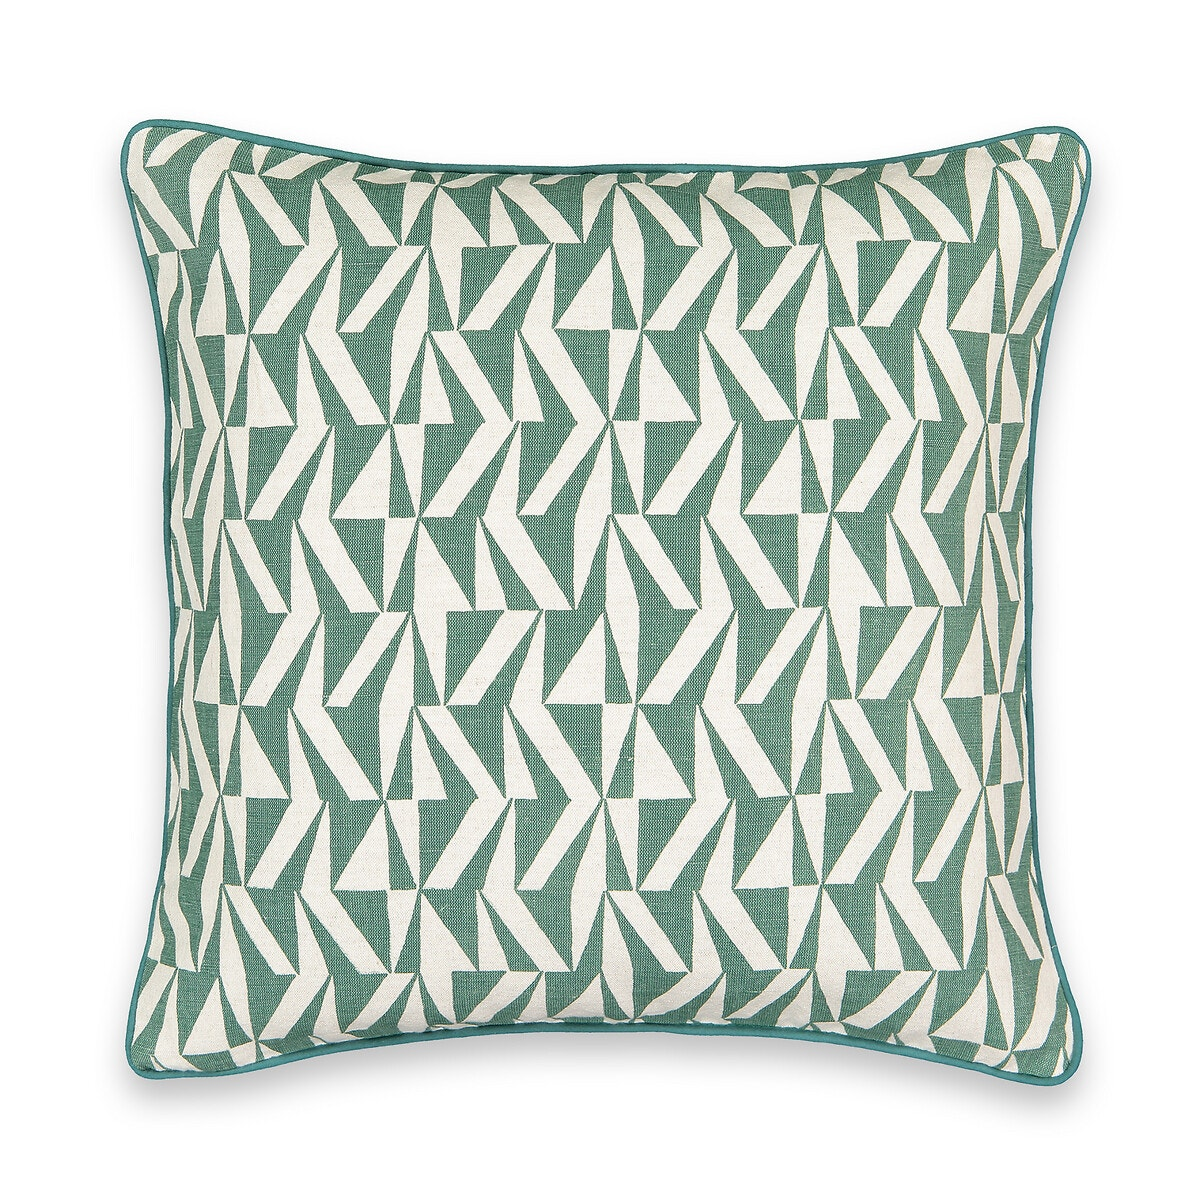 Iyere Embroidered Cushion Cover